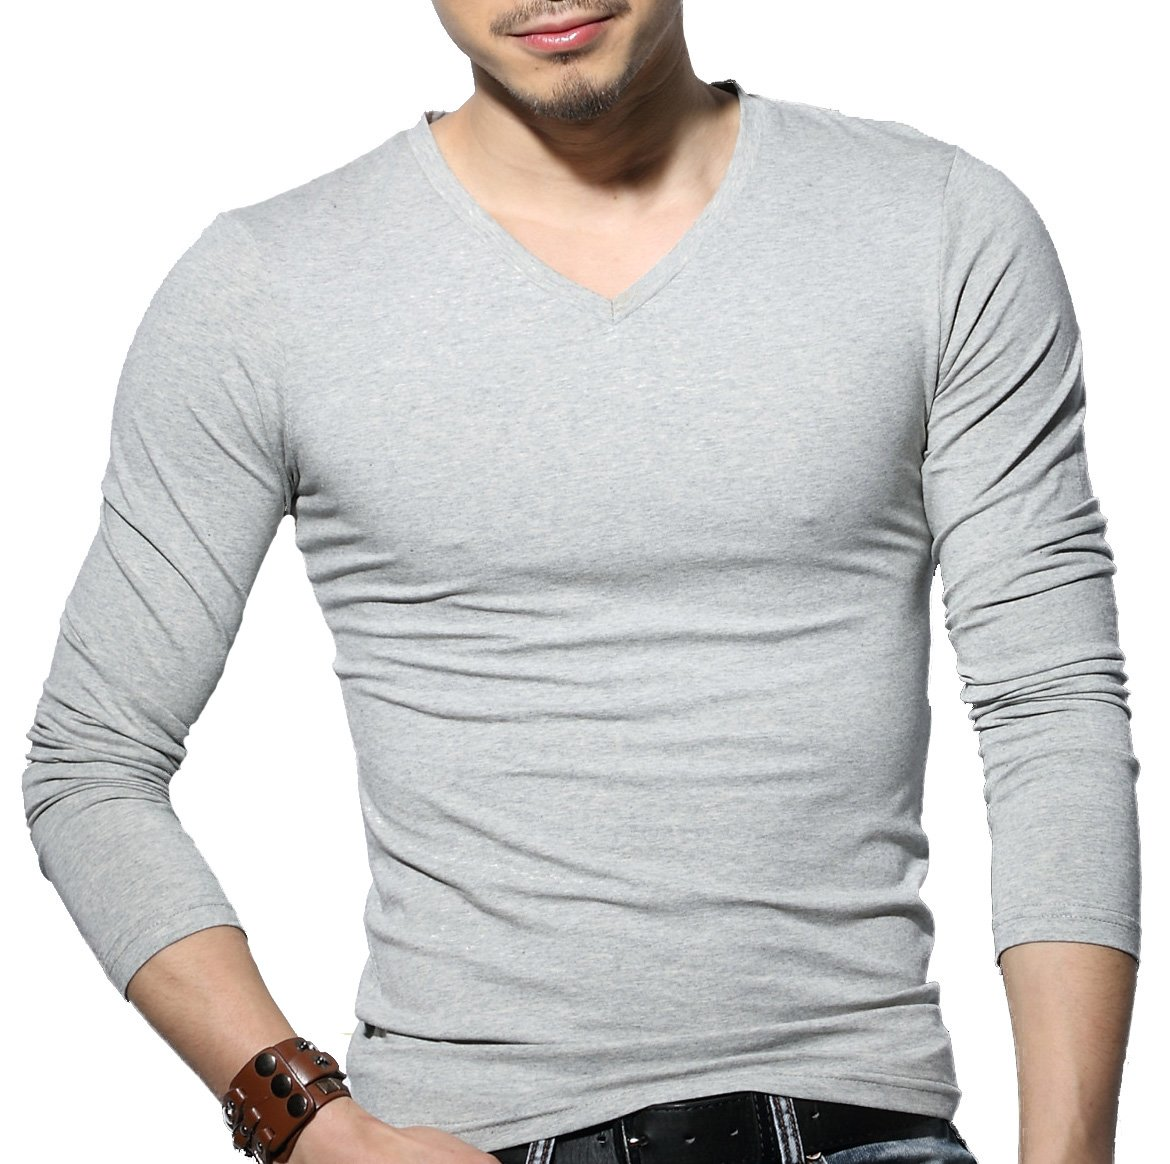 Sunshine Code Men's Tagless Slim Fit Top Muscle Cotton V-Neck Long Sleeve Undershirts T-Shirts, S, Grey